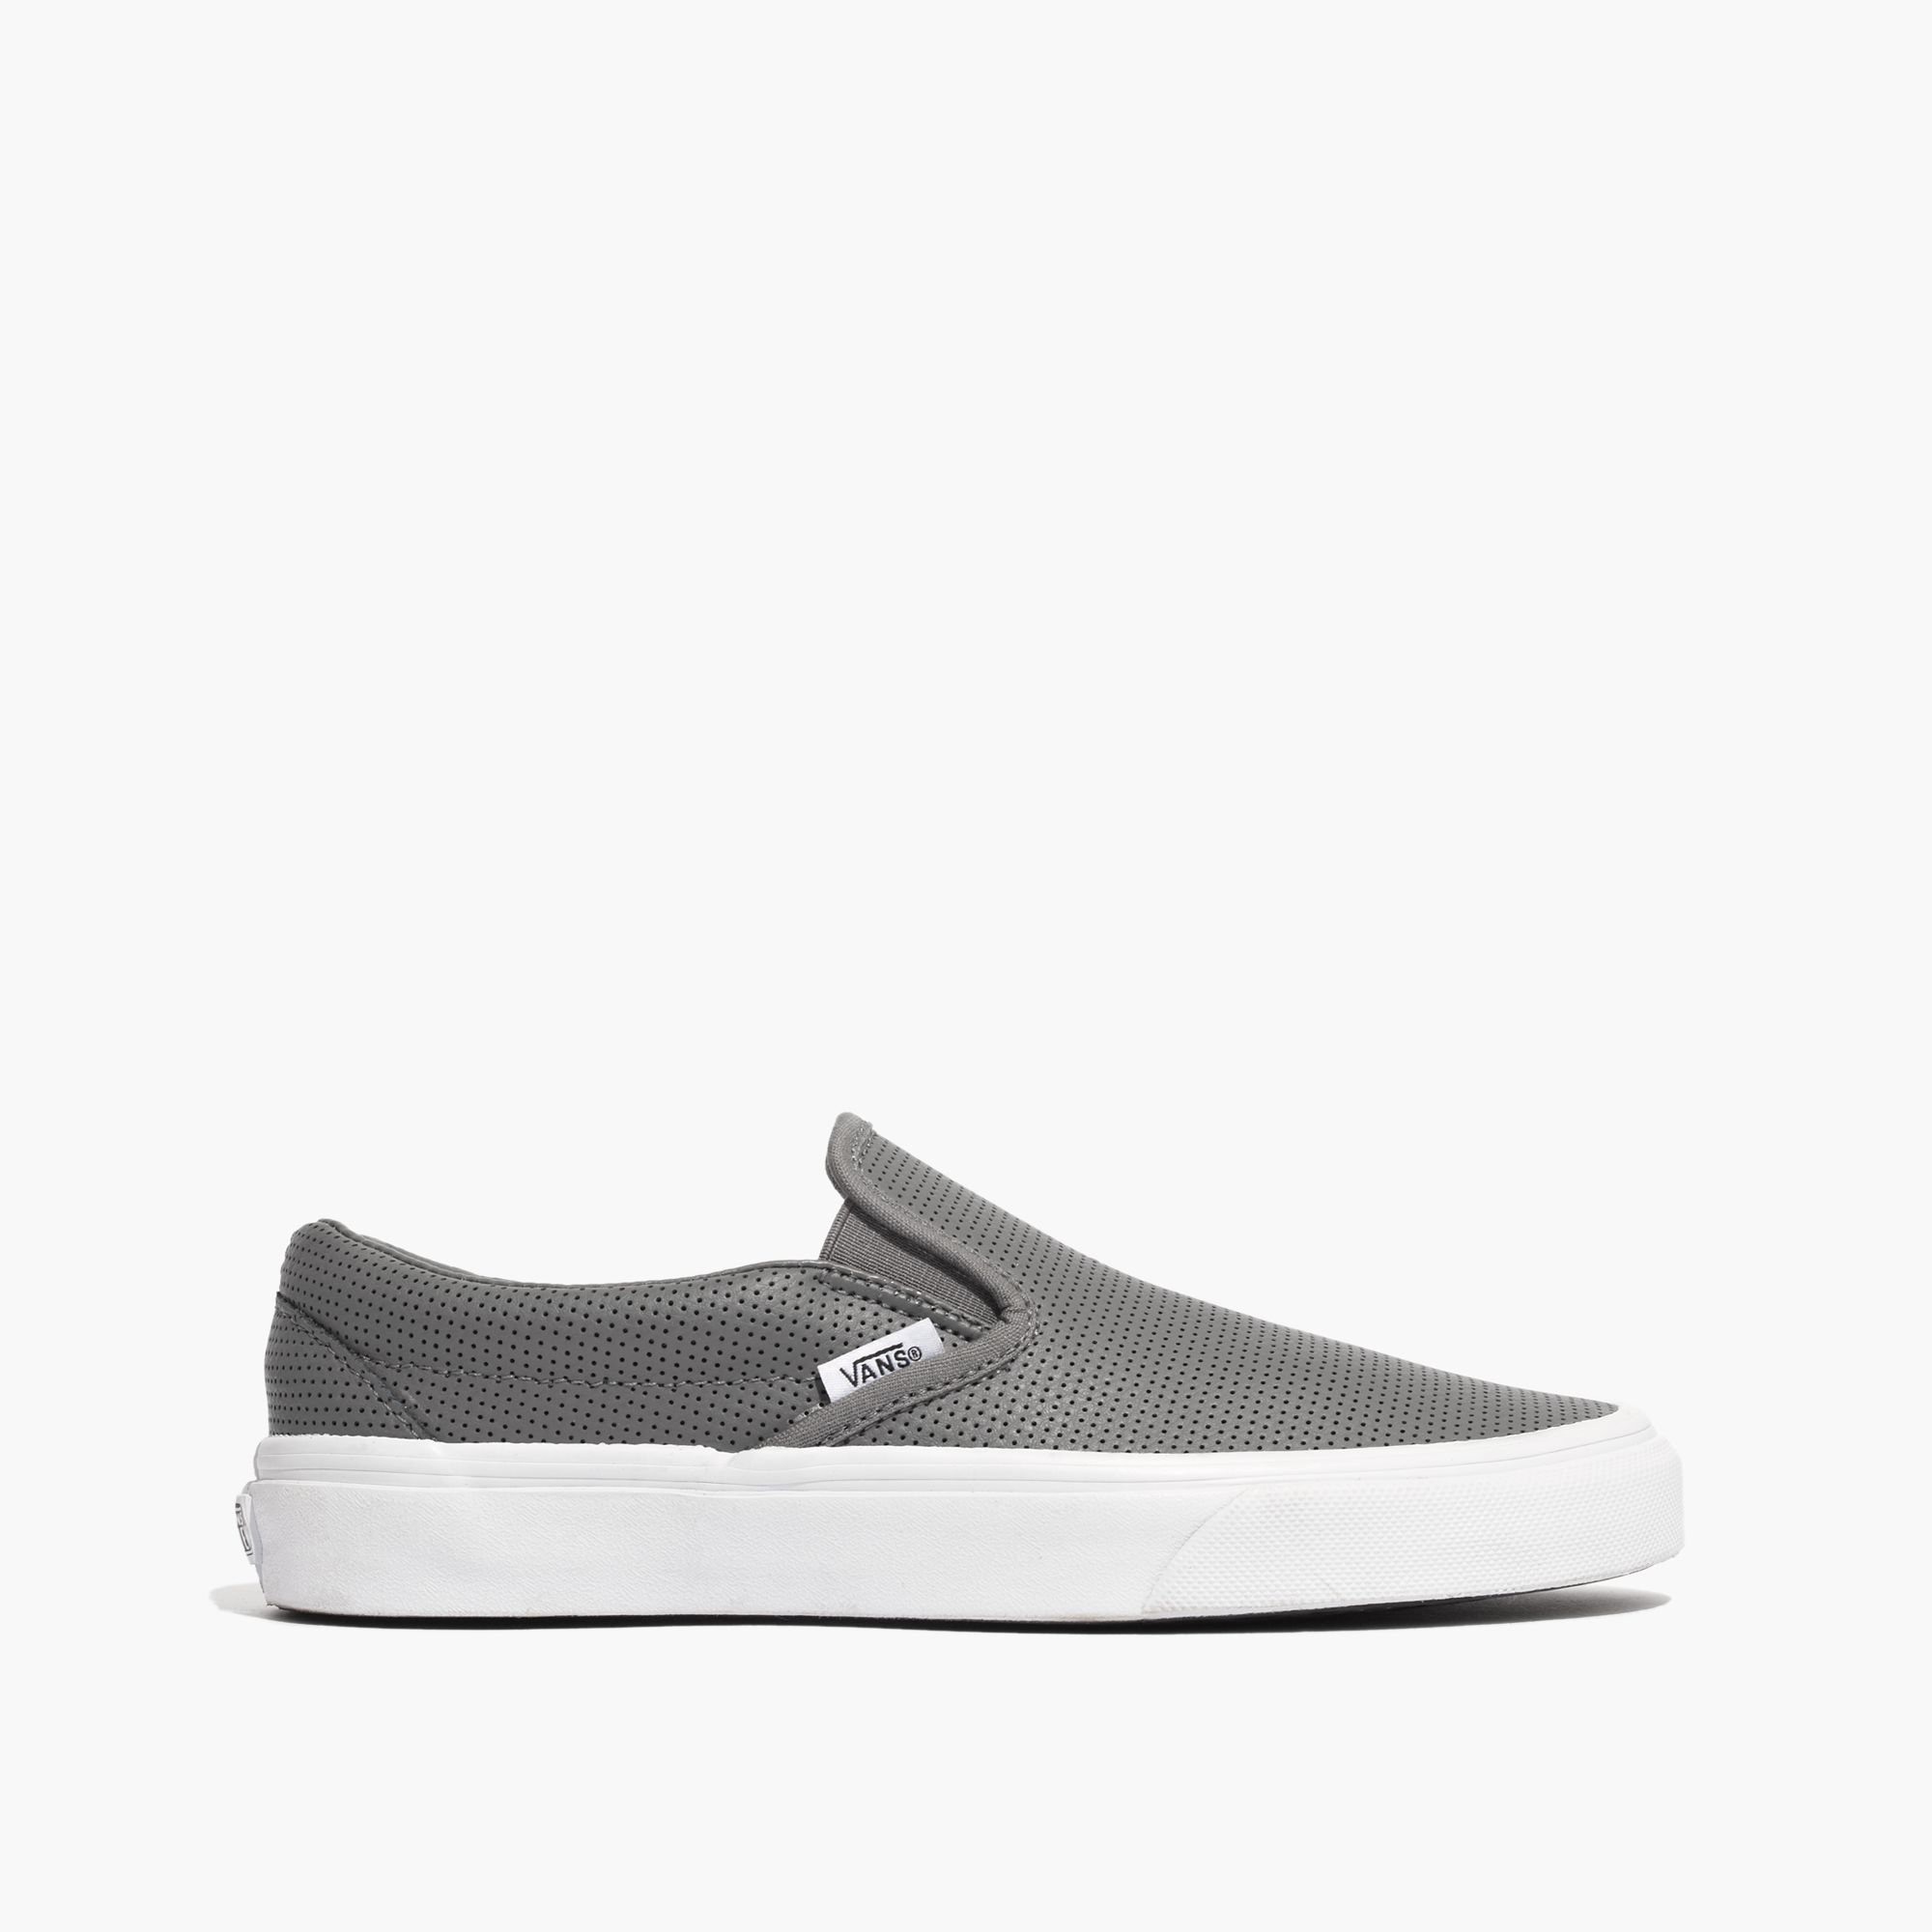 aa575f21 Madewell Gray Vans® Classic Slip-on Sneakers In Grey Perforated Leather